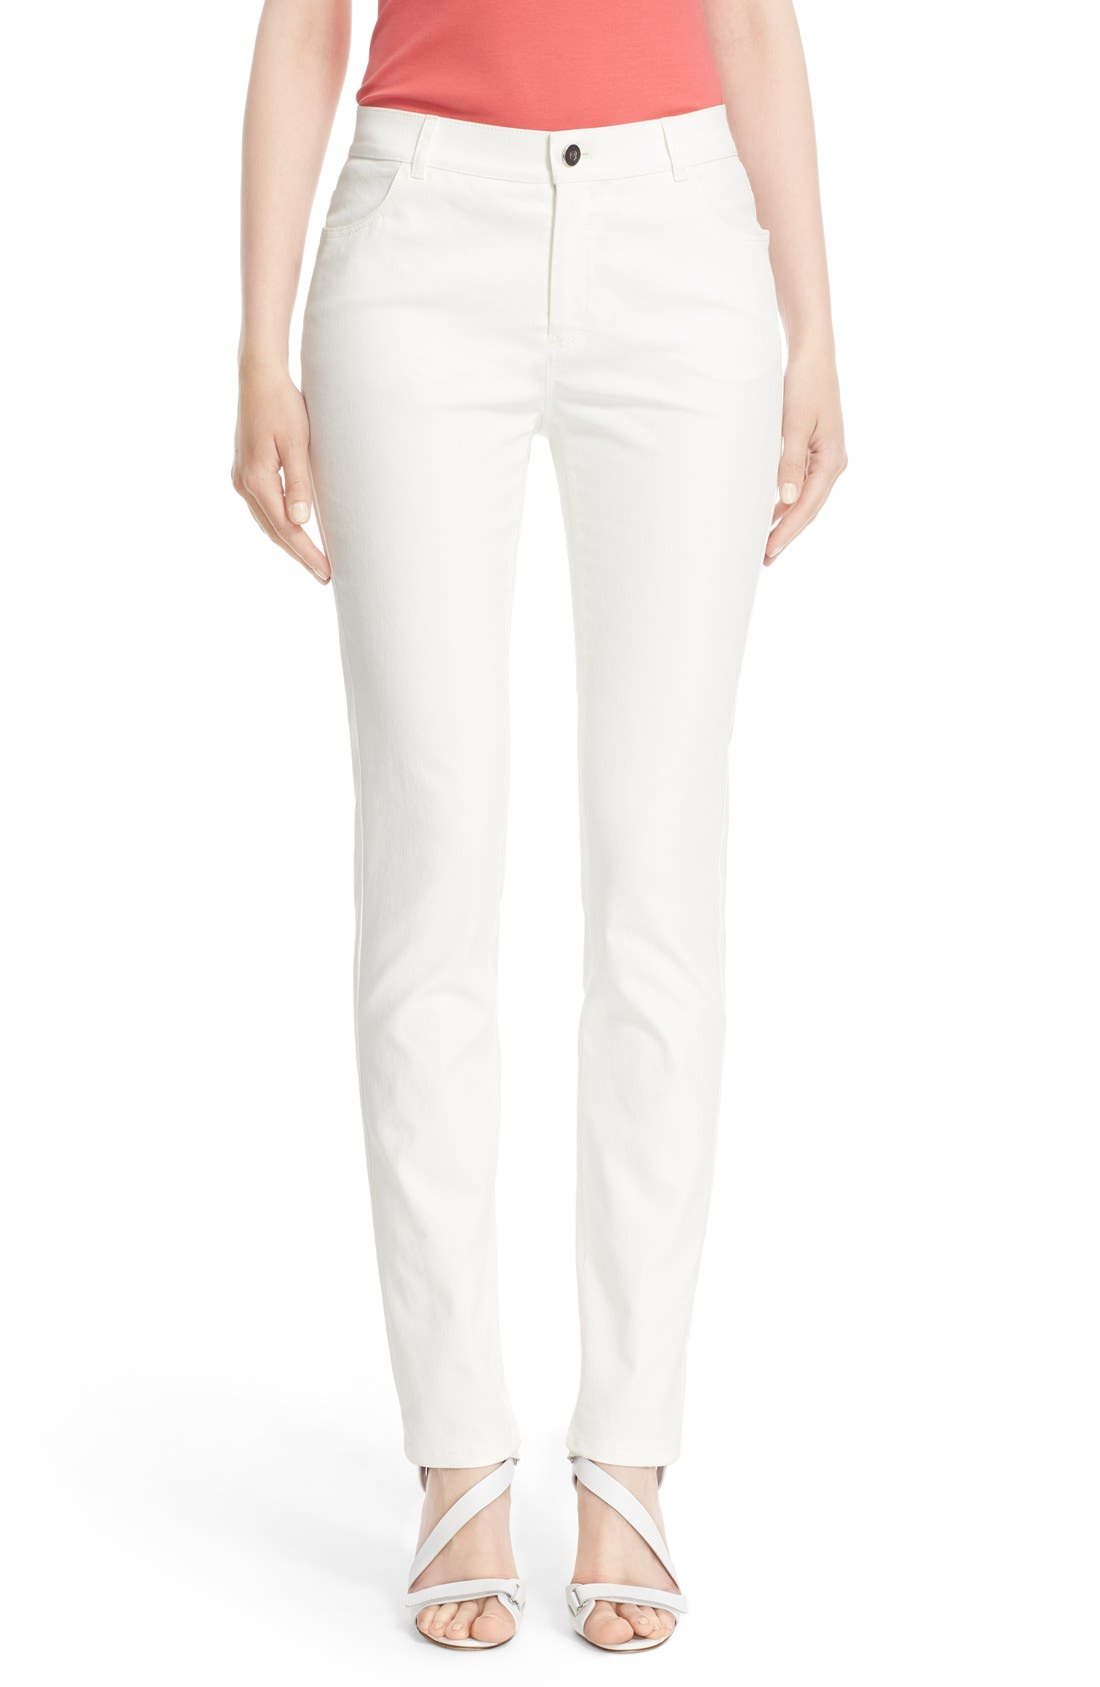 Alternate Image 1 Selected - Lafayette 148 New York Waxed Denim Slim Leg Jeans (Regular & Petite)